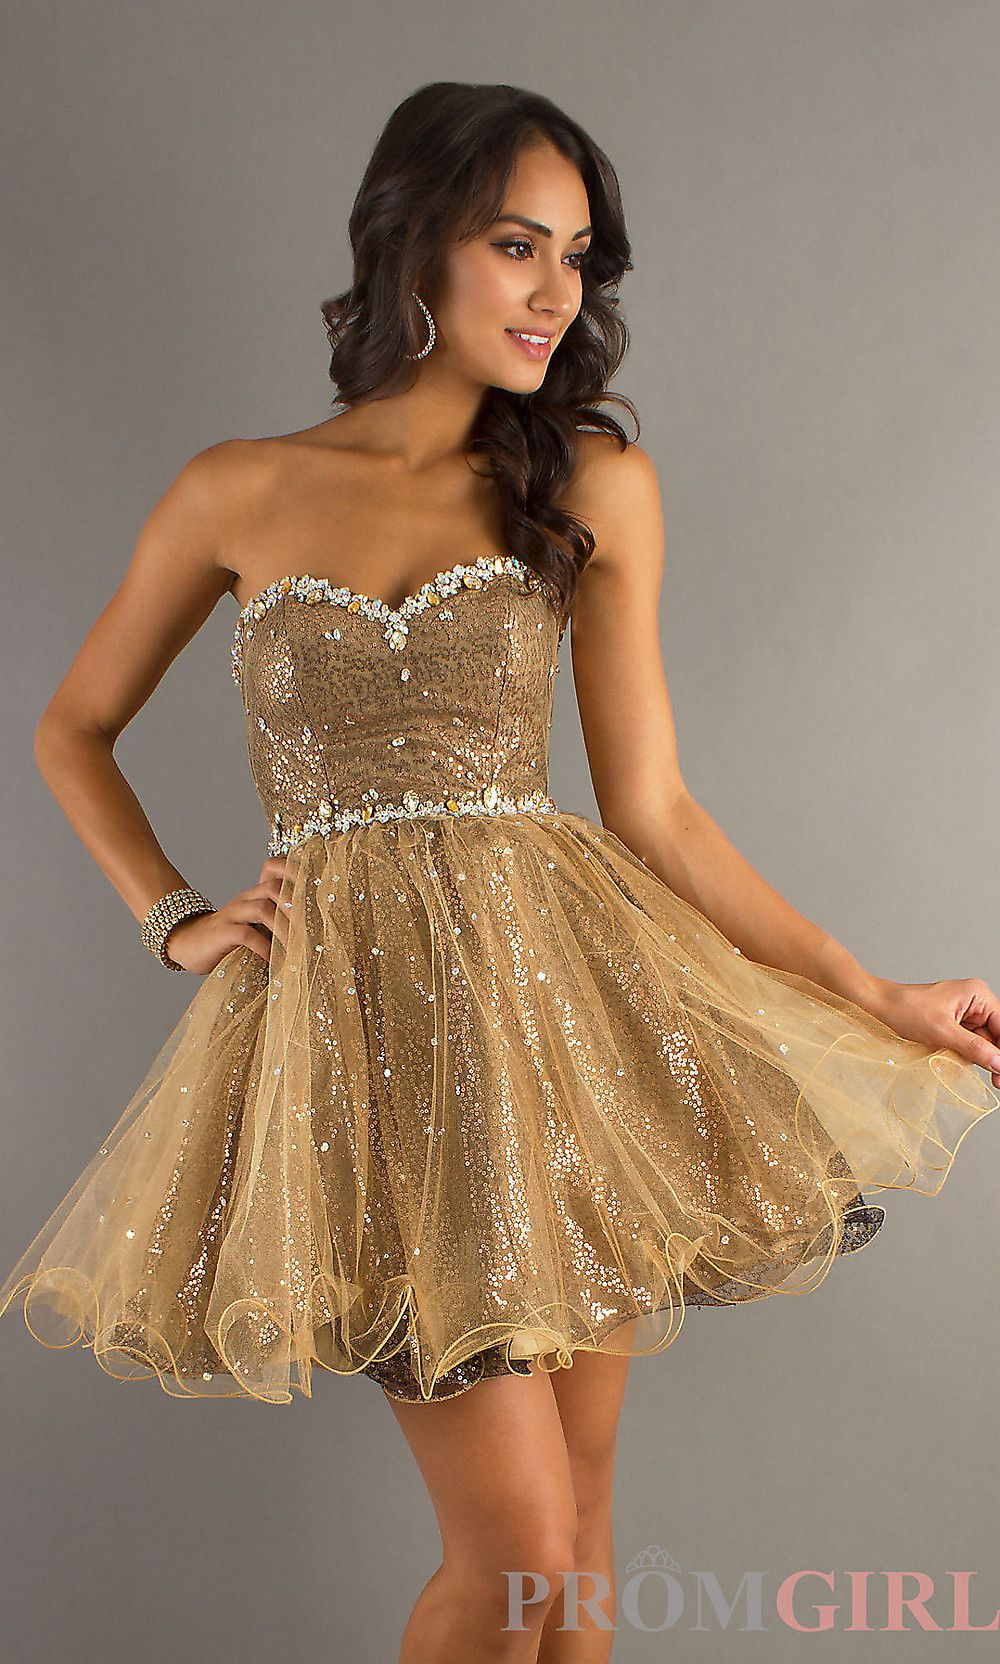 FrontView | Prom | Pinterest